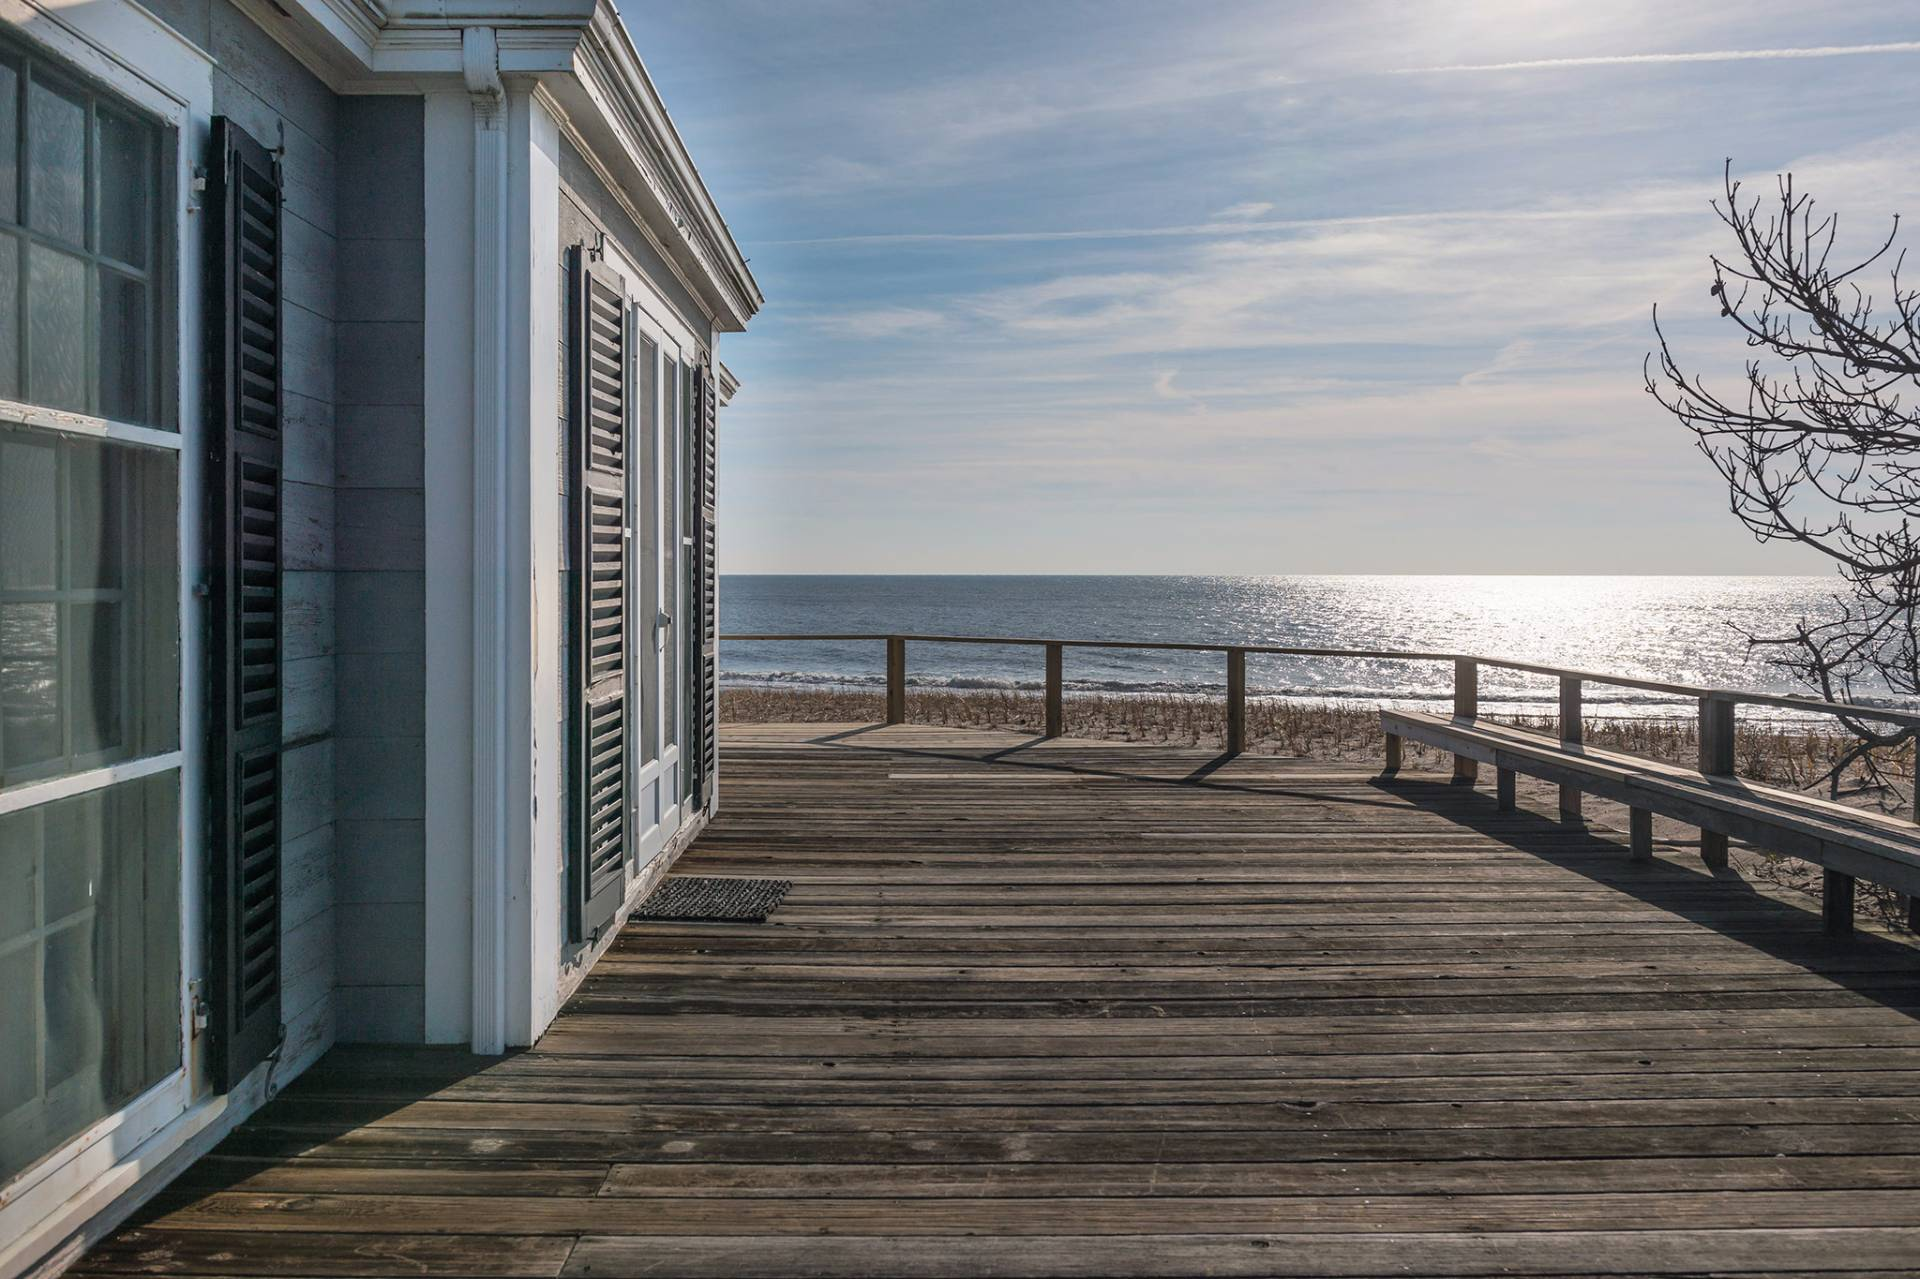 Additional photo for property listing at Top Location, East Hampton Oceanfront,Very Exclusive Area  East Hampton, New York